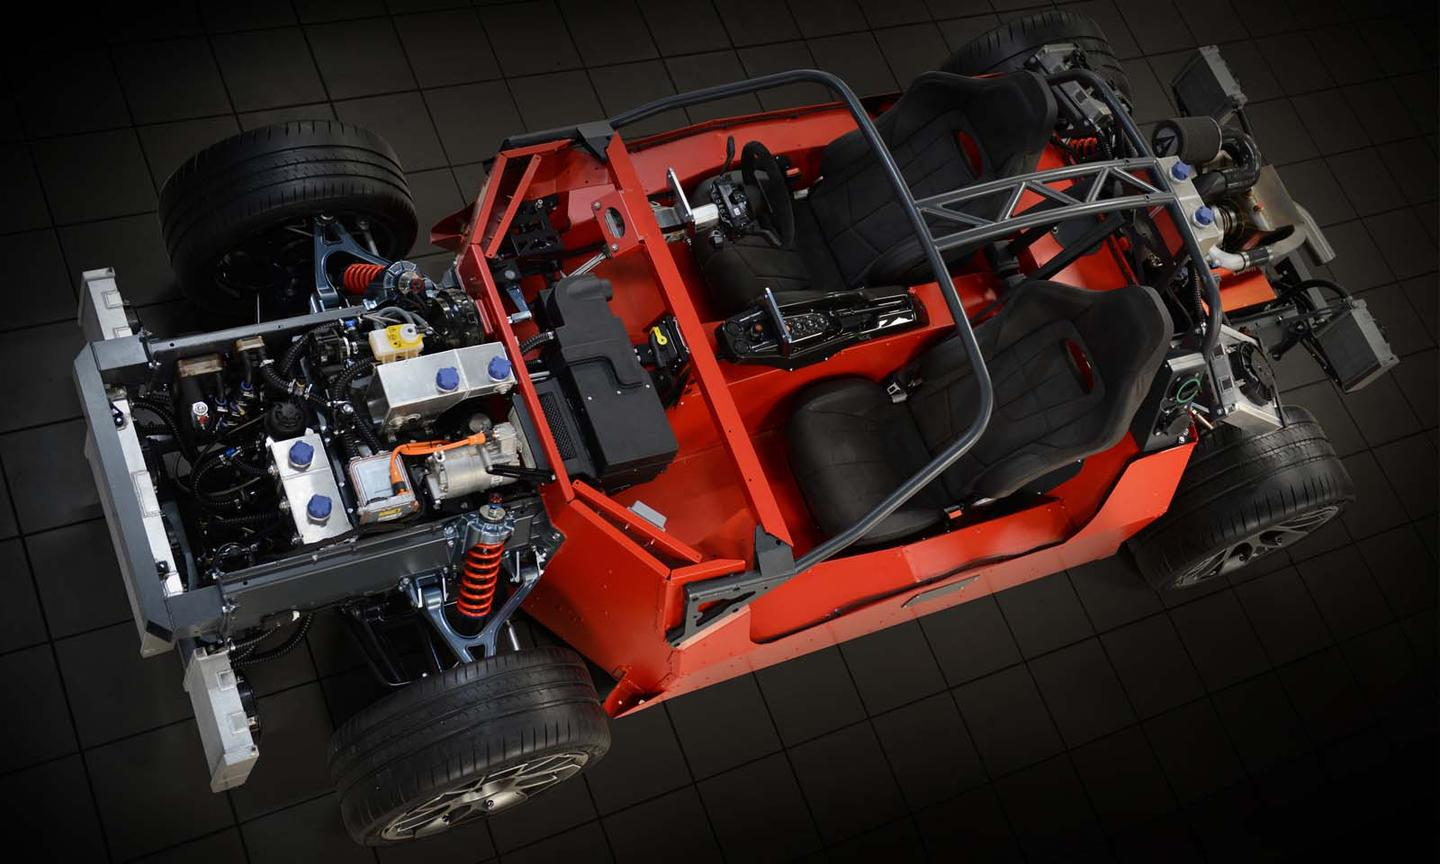 A look at the chassis and powertrain of the ArielHIPERCAR